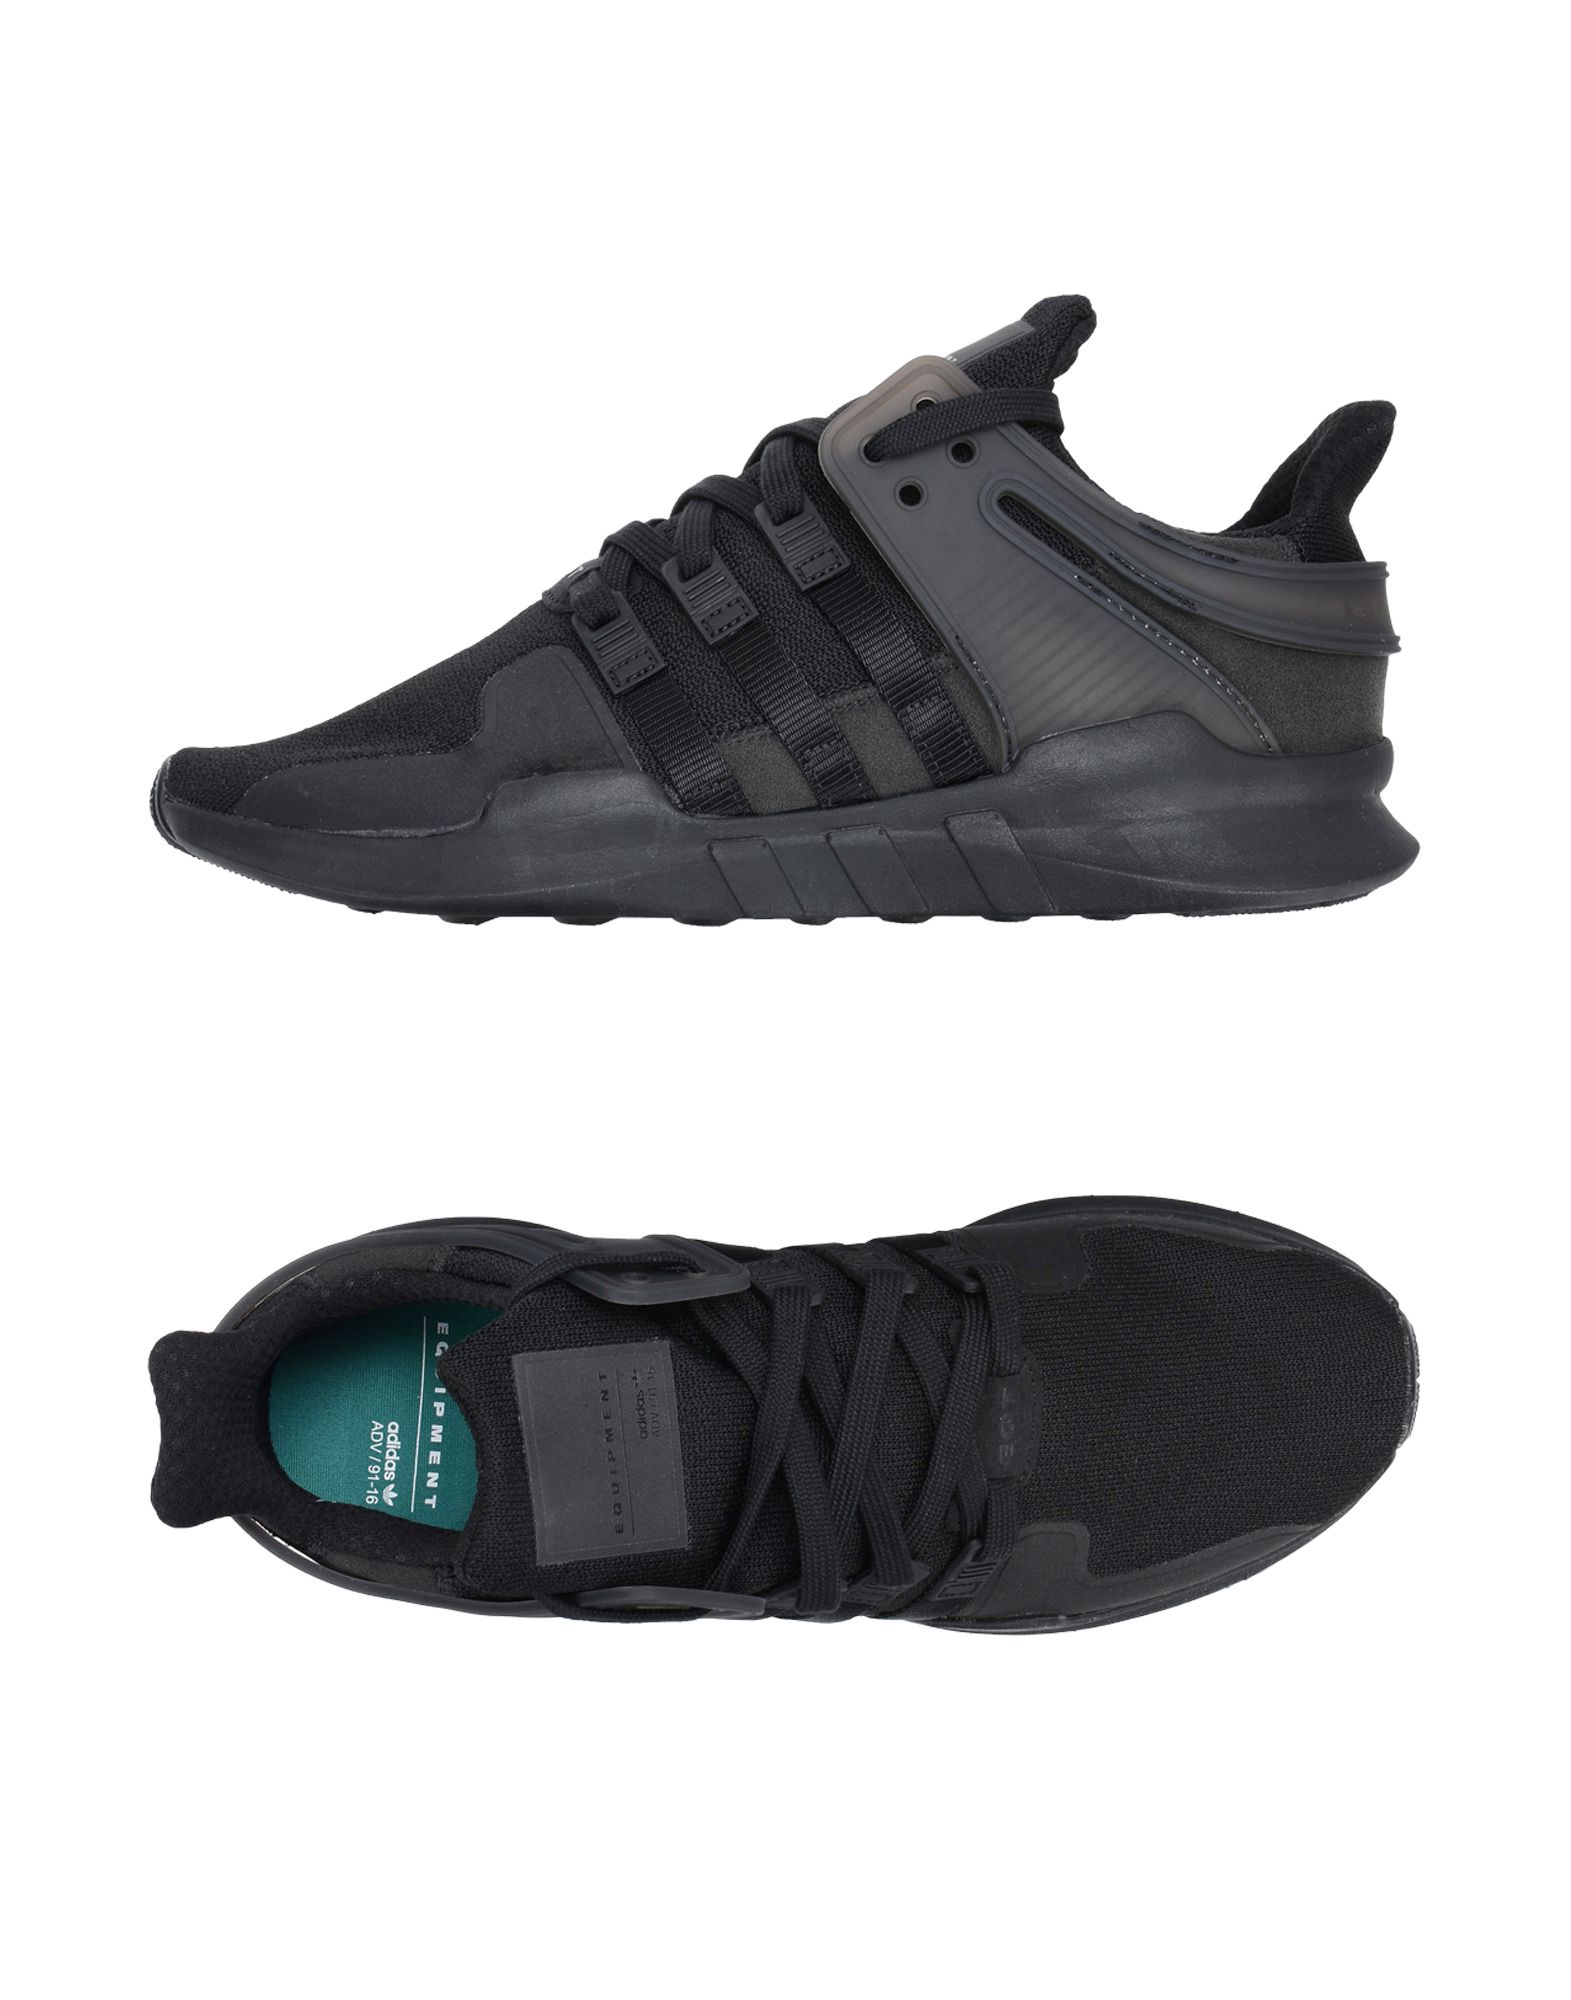 Sneakers Adidas Originals Eqt Support Adv - Uomo - 11415229EJ